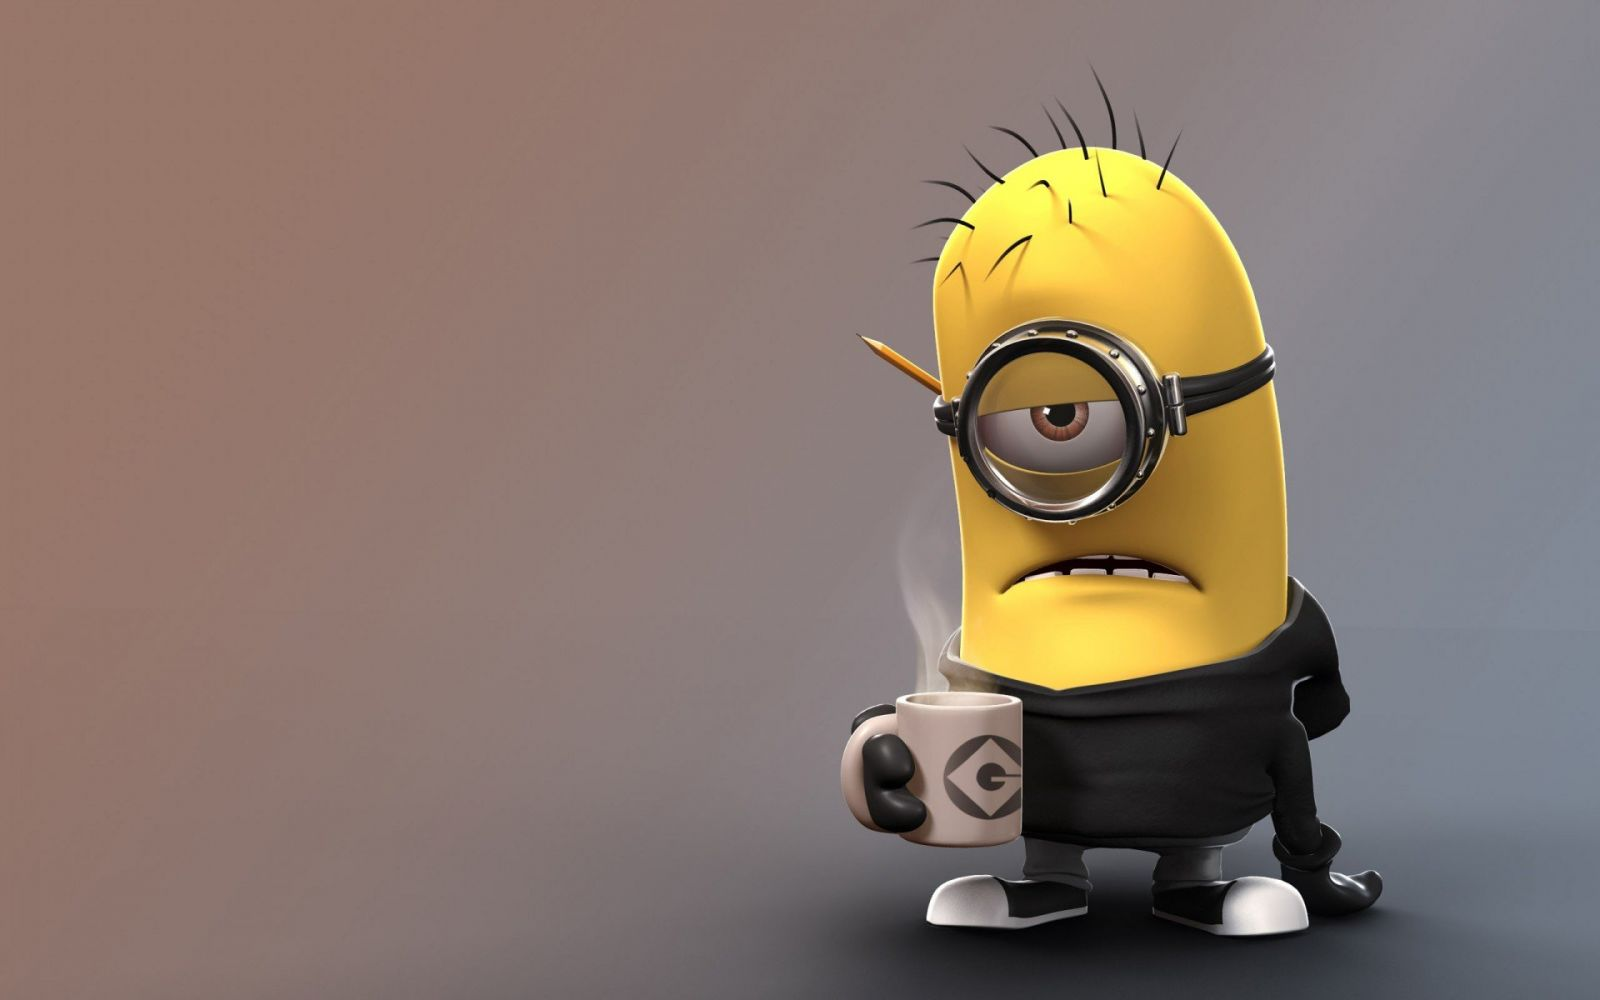 despicable me wallpaper minions 64 images - HD